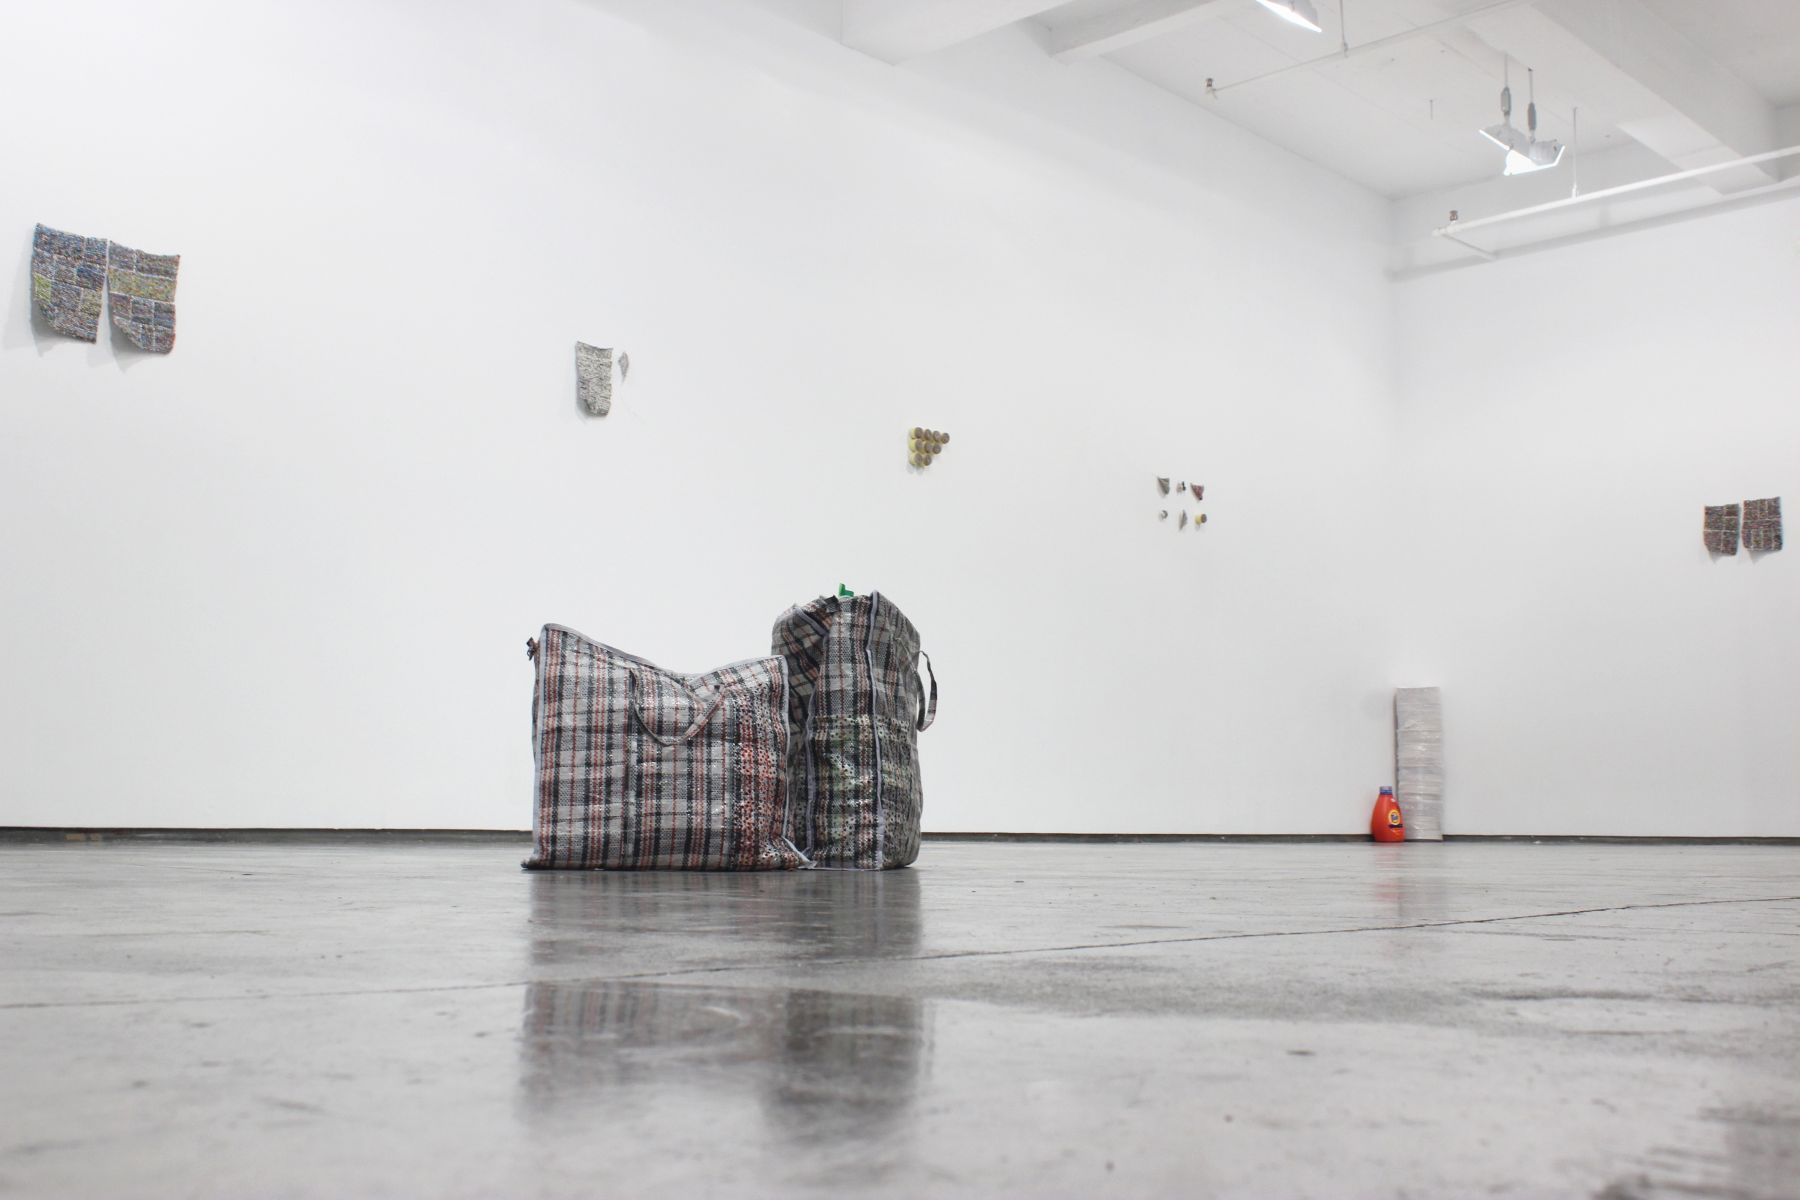 Stefana McClure, Siege of the Flying Mermaids, 2015, Installation view